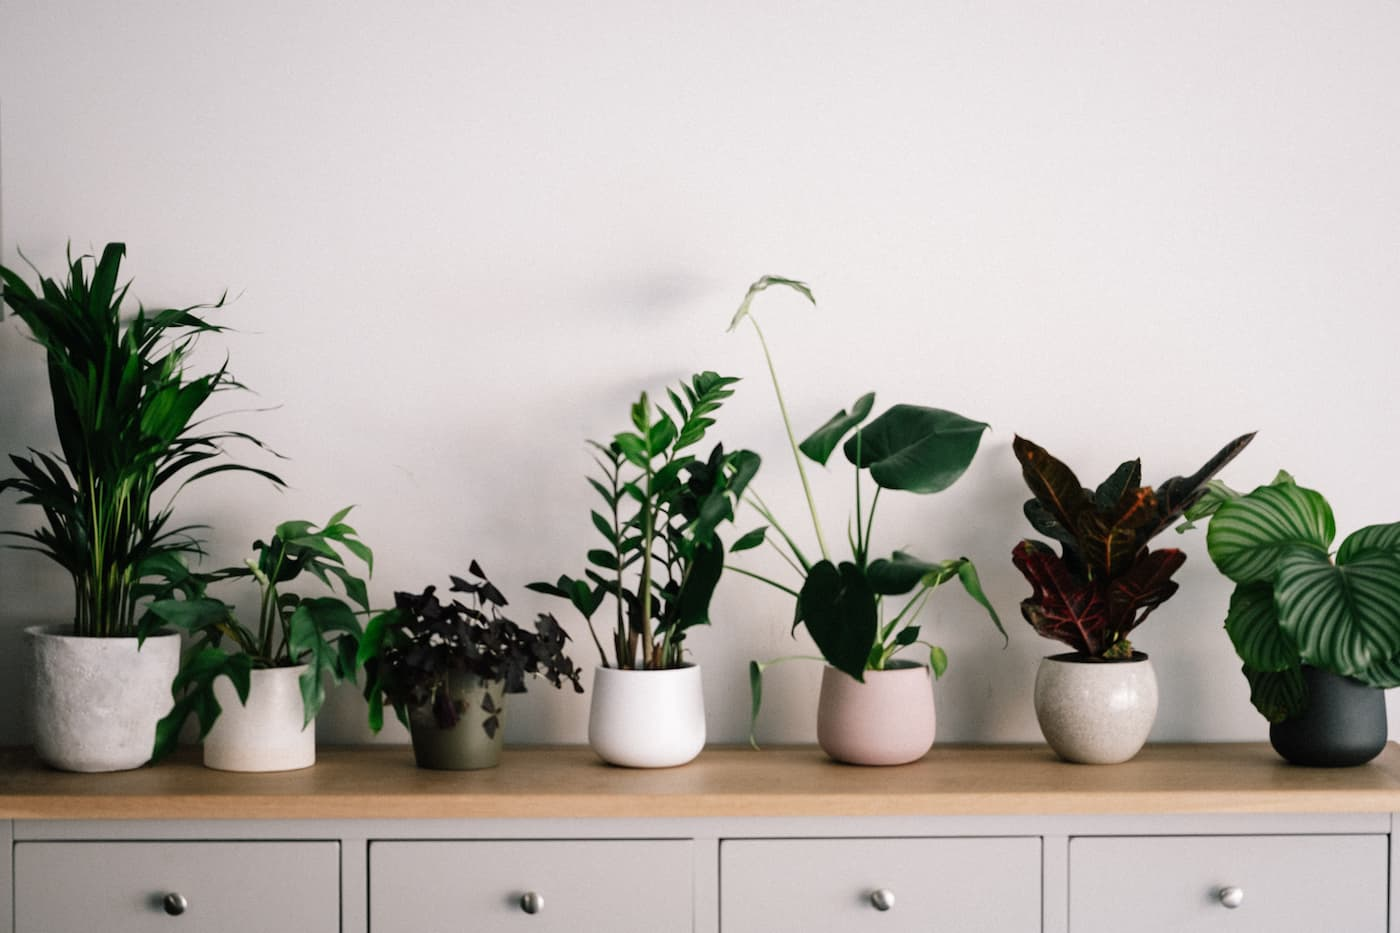 a row of indoor houseplants sitting on a countertop